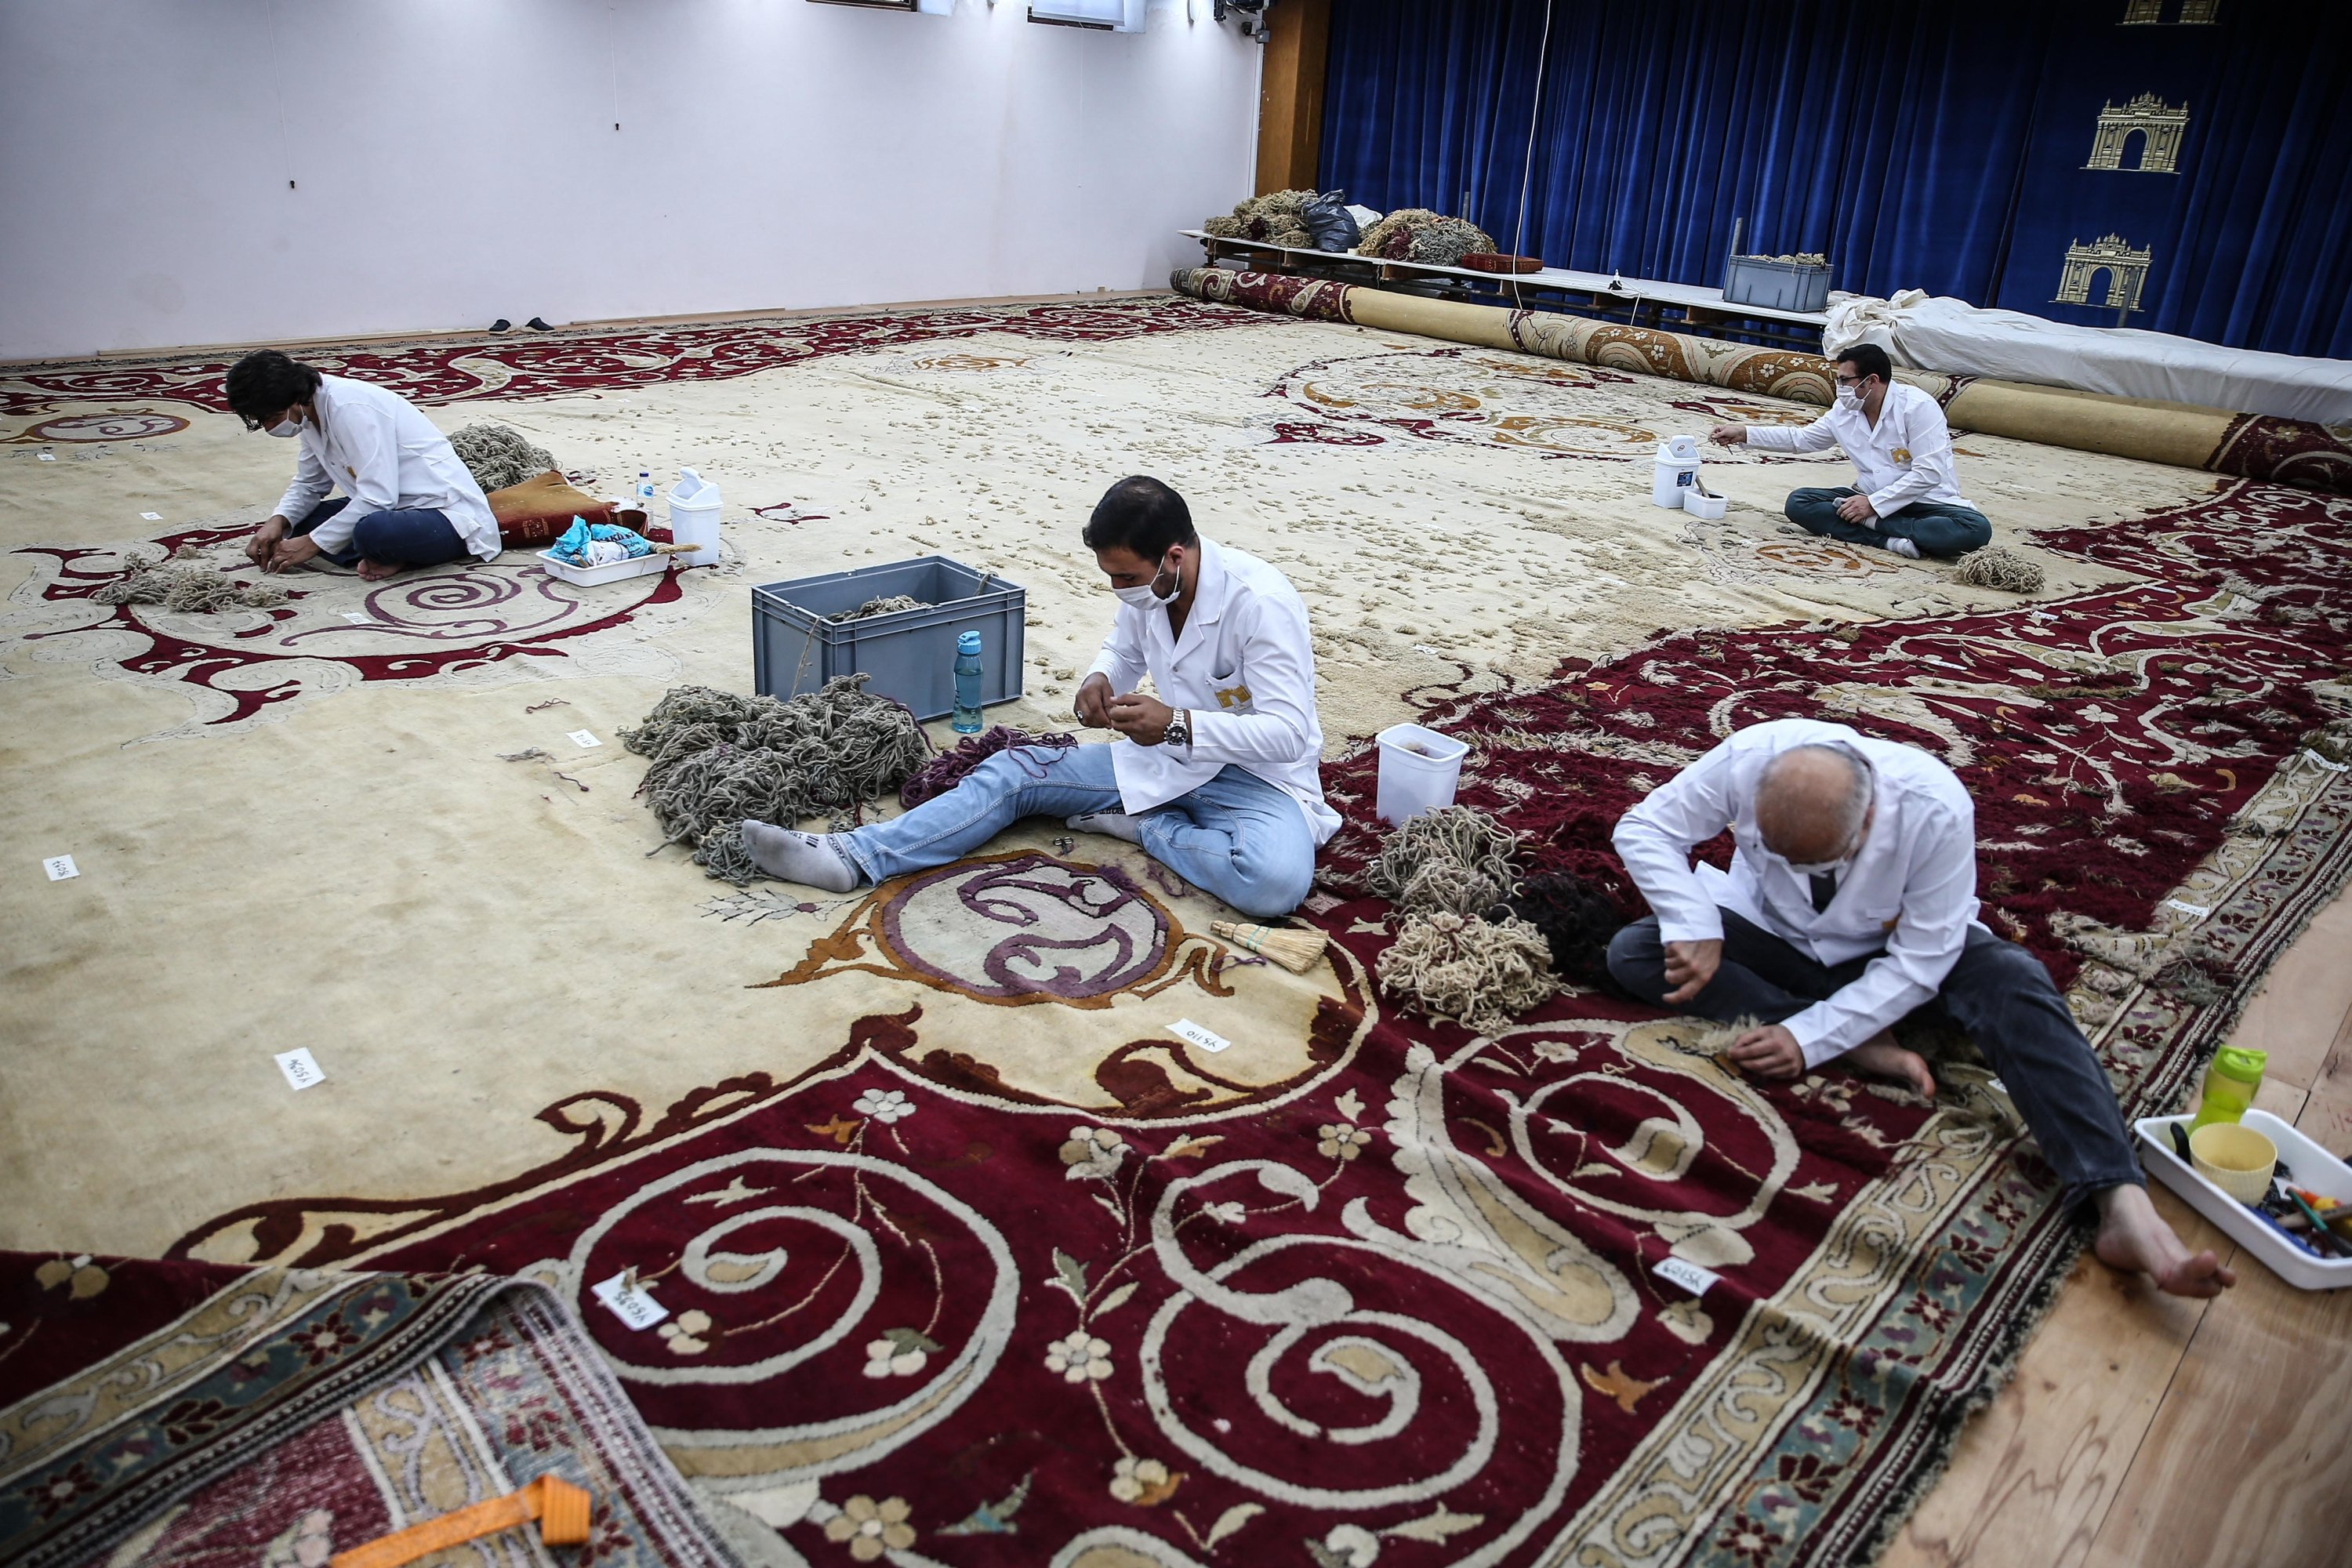 Seventy percent of the restoration of the carpet has been completed, Istanbul, Turkey, Aug. 19, 2020. (AA Photo)